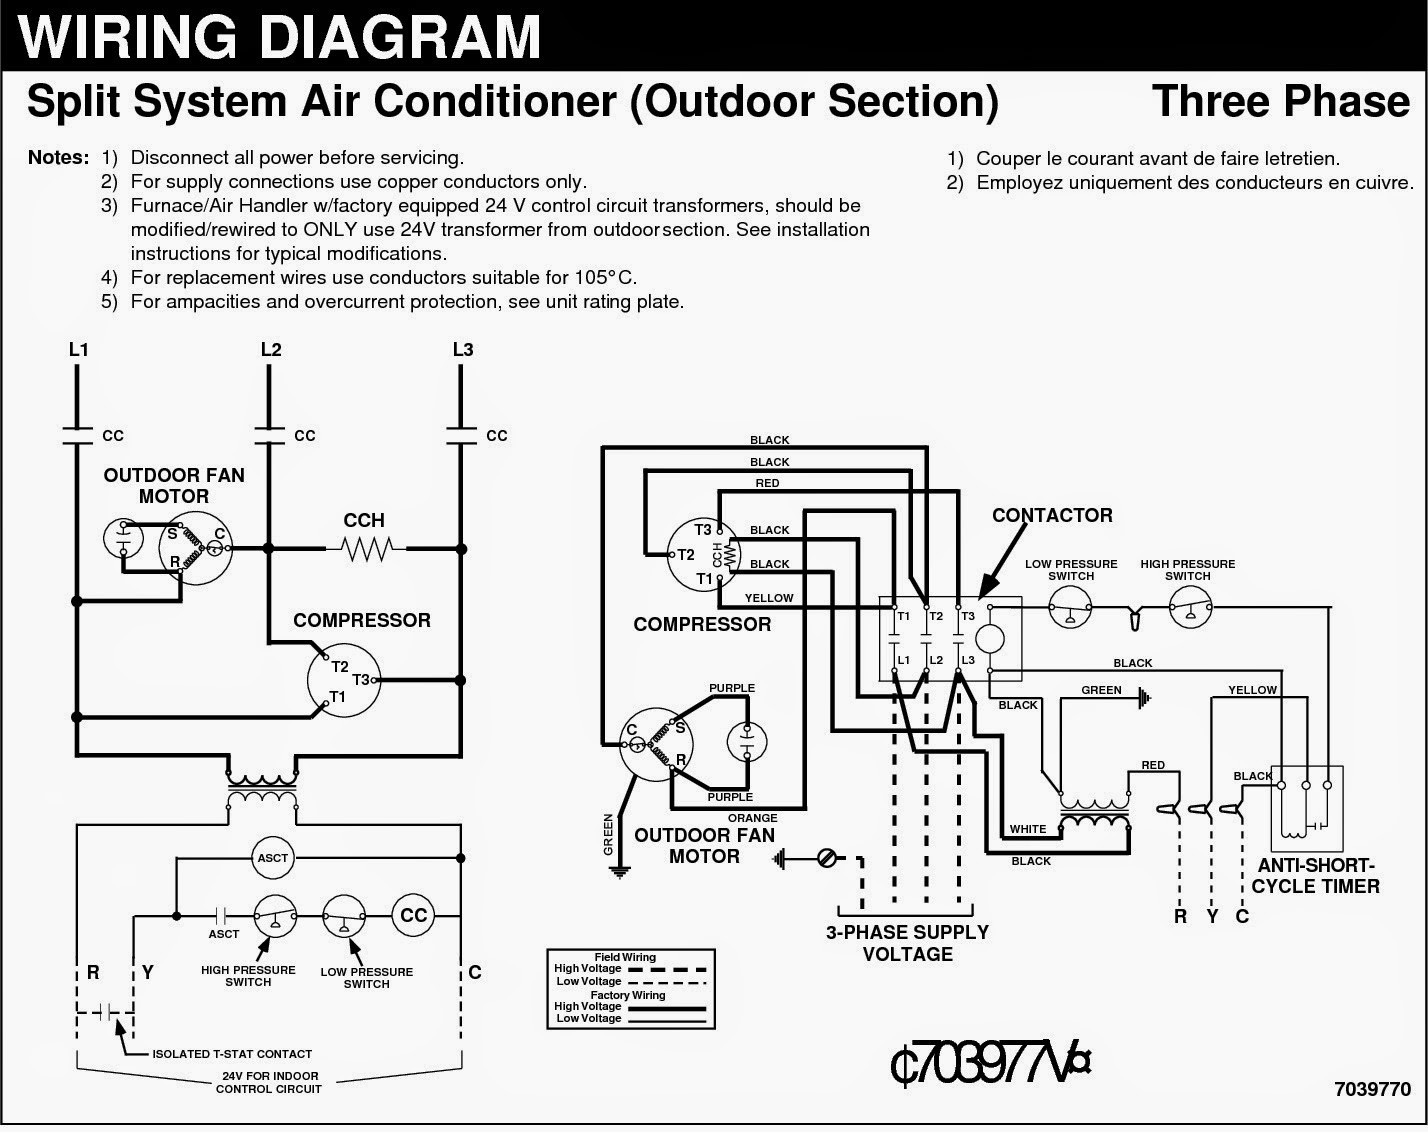 3 Phase Air Compressor Wiring Diagram Diagrams Simple Magnetic Starter For 220 Wire Blog Volt 1